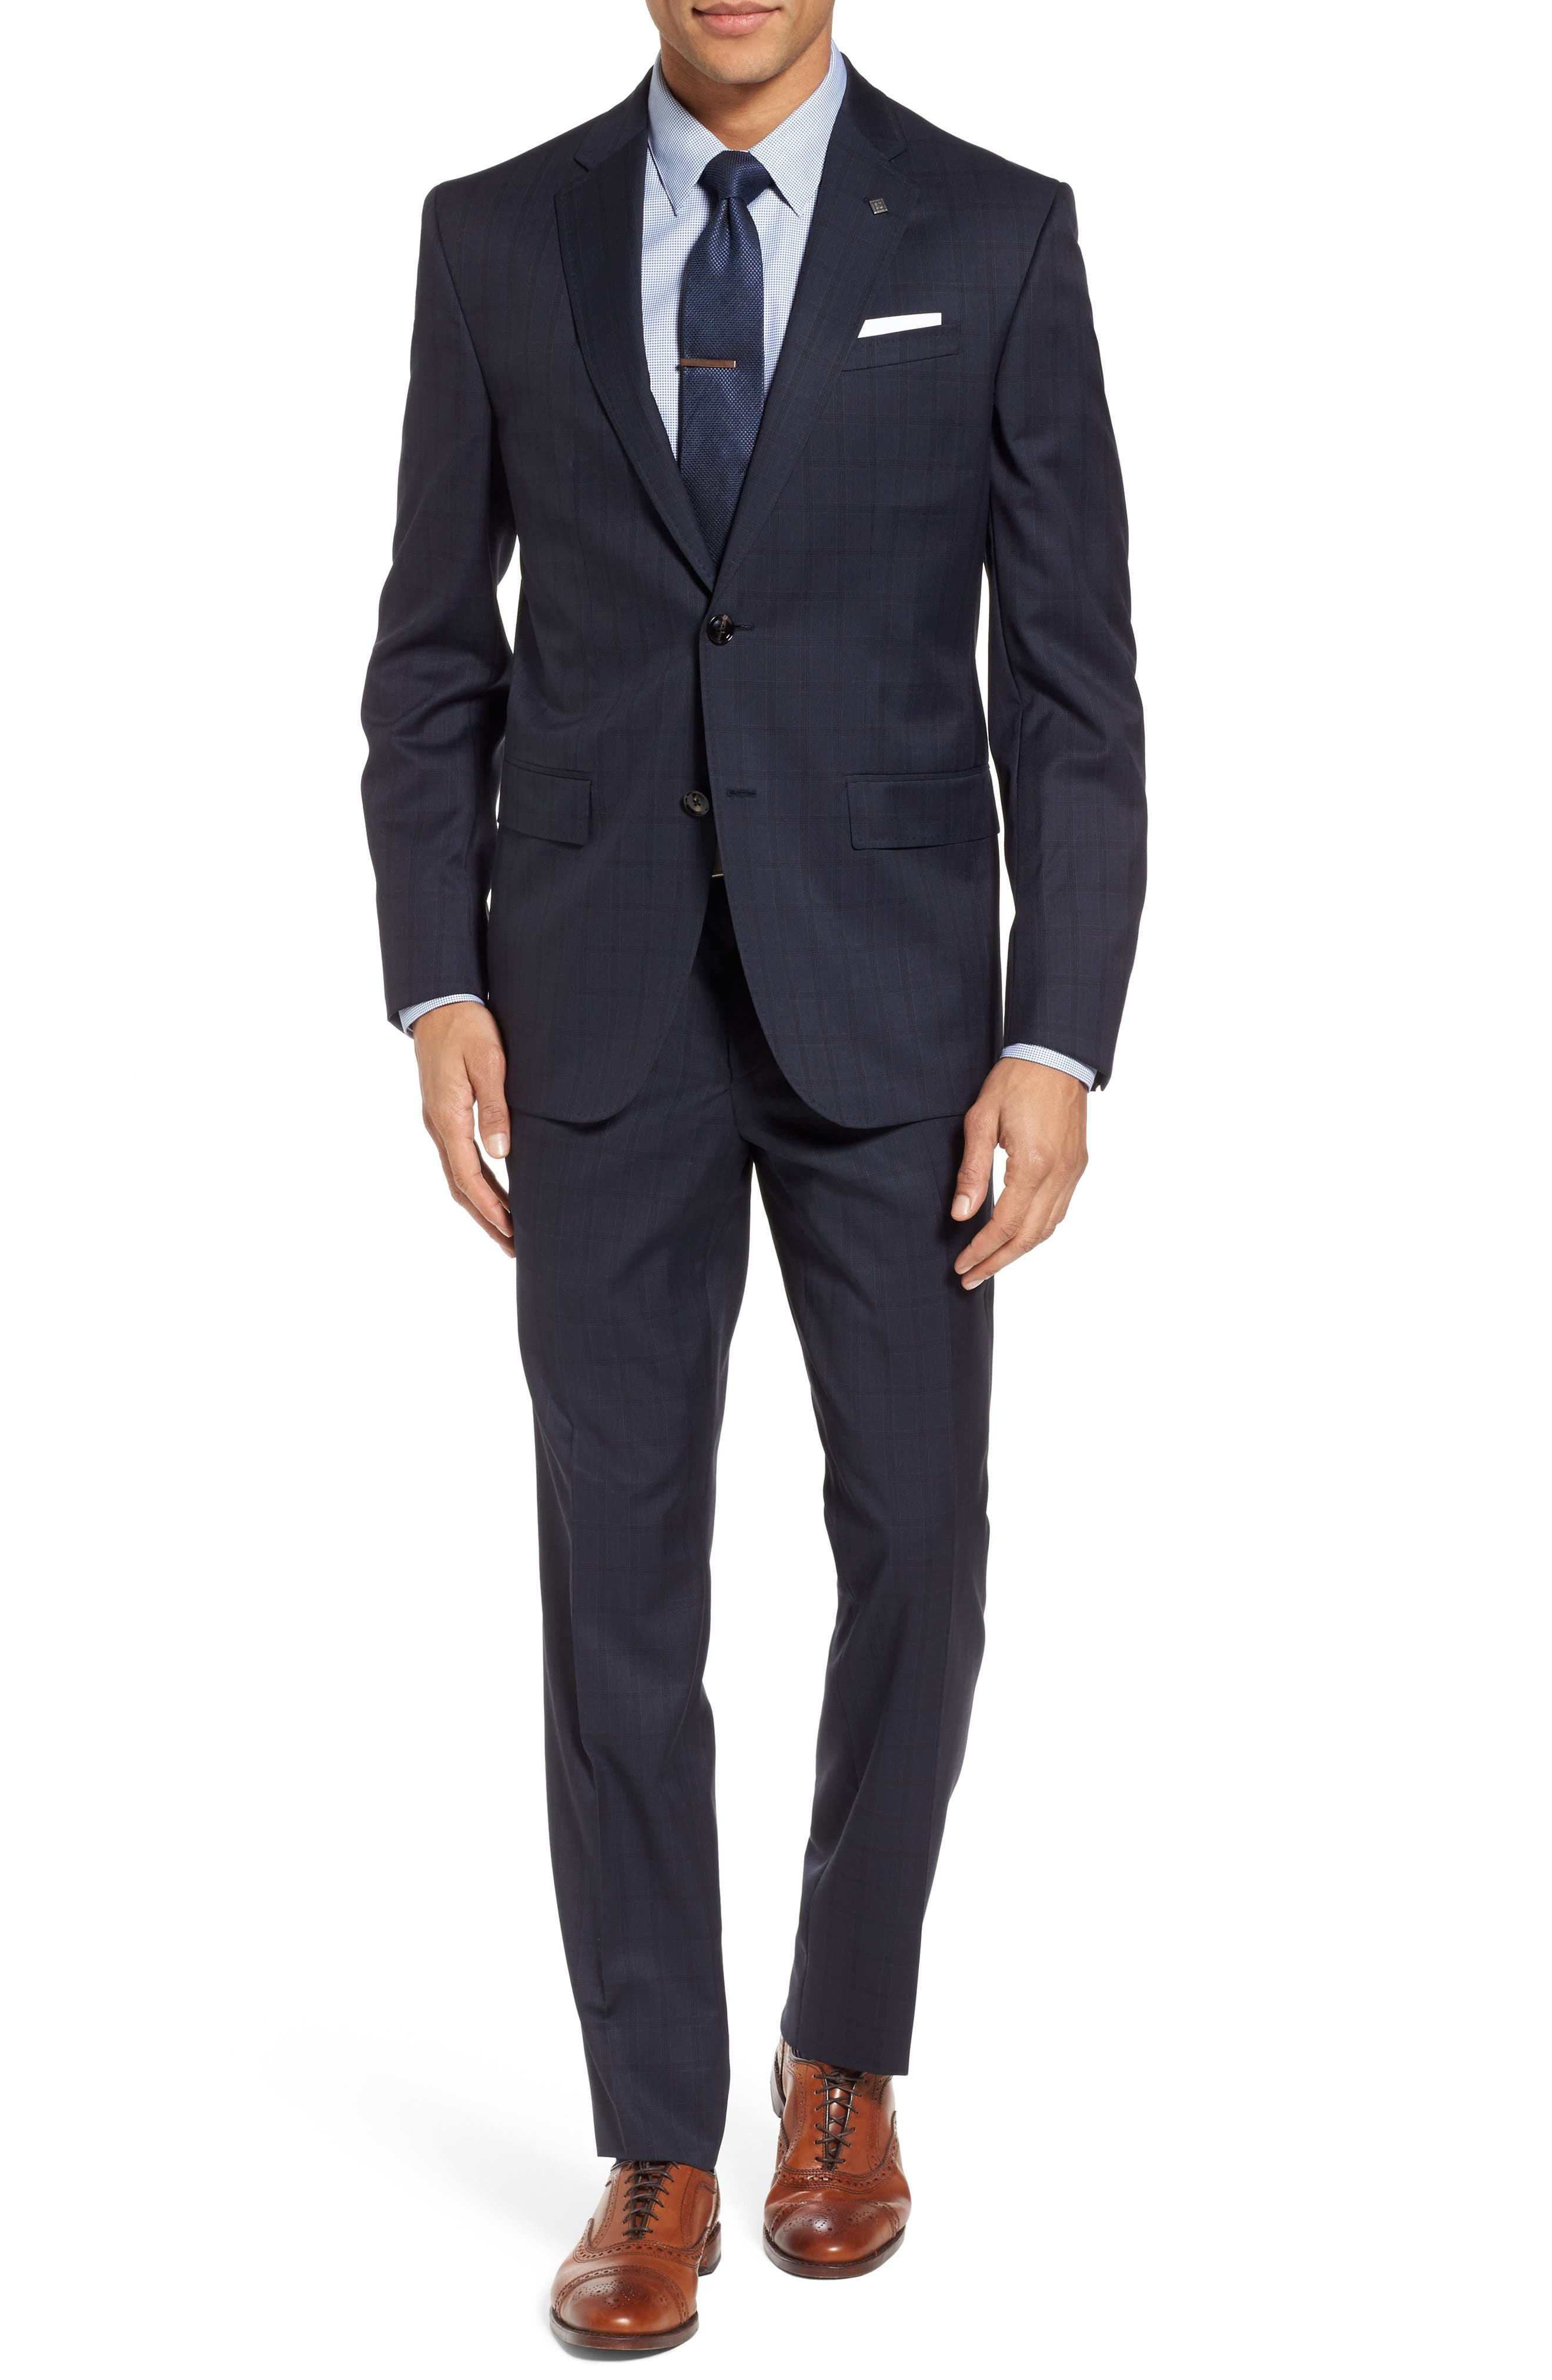 Jay Trim Fit Check Wool Suit,                         Main,                         color, Navy